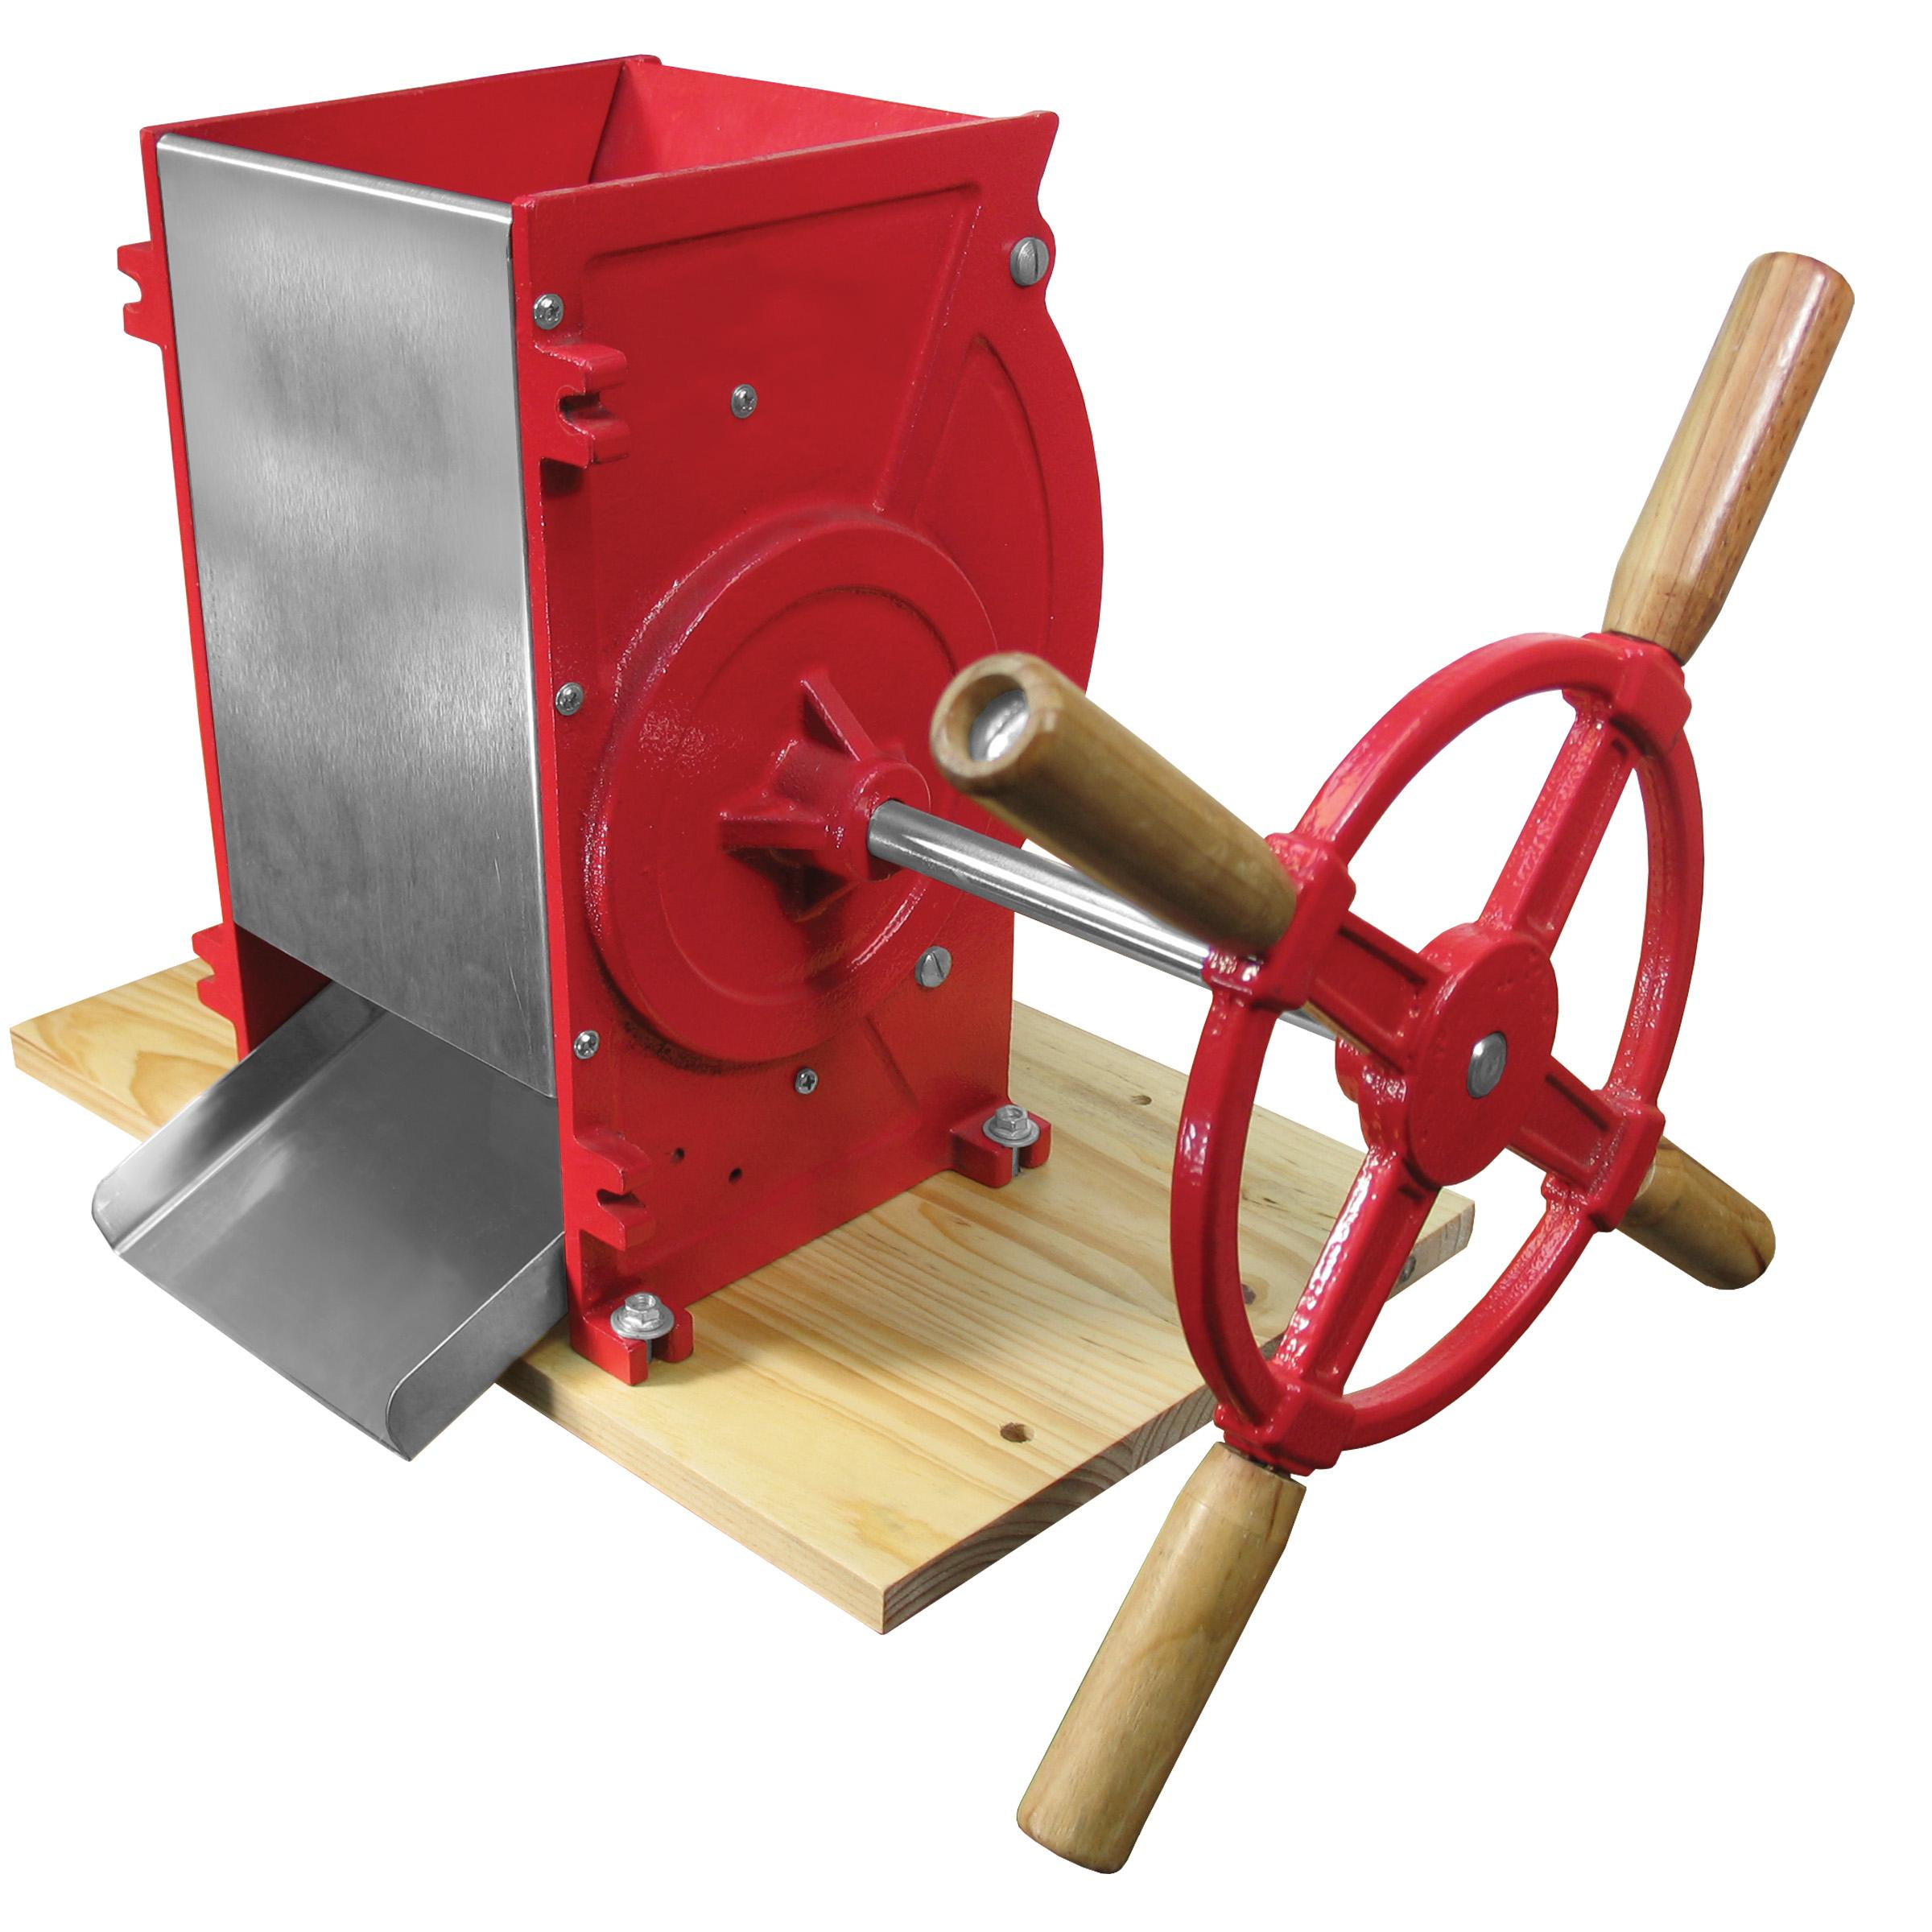 Fruit crusher grape apple crusher grinder for grape apple fruit - From The Manufacturer View Larger Essential For Grinding Large Quantities Of Apples